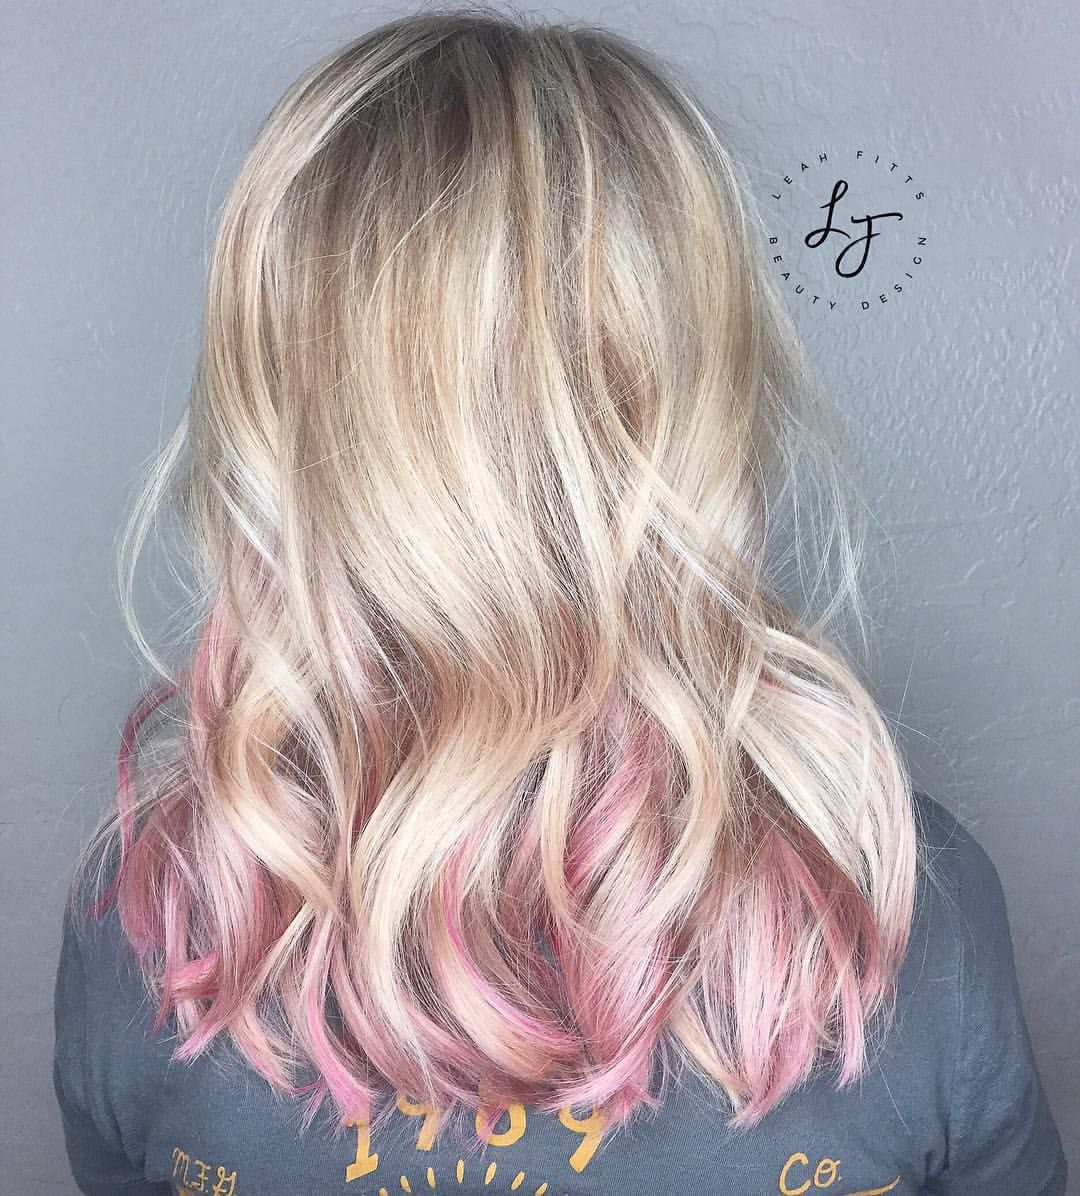 Subtle Undercolor I Want A Darker Shade Tho Pink Blonde Hair